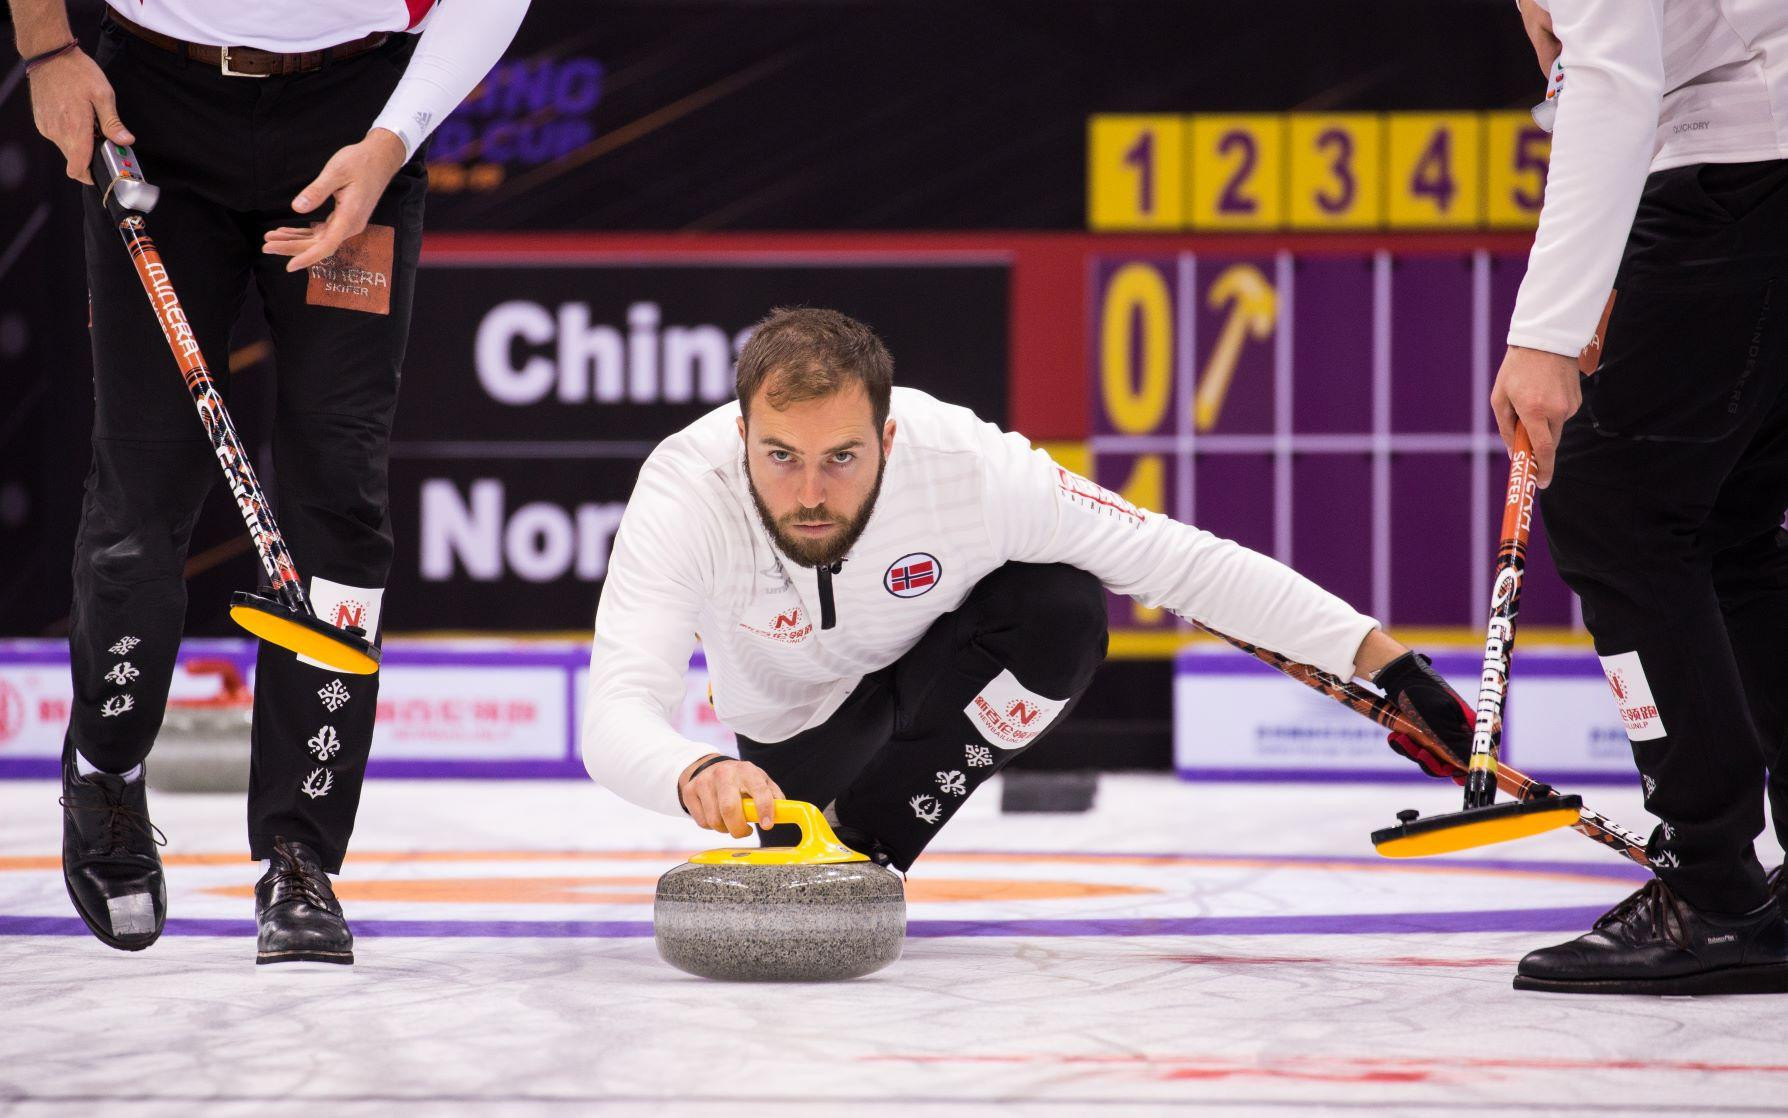 Norway were among the other winners in the men's tournament ©Curling World Cup